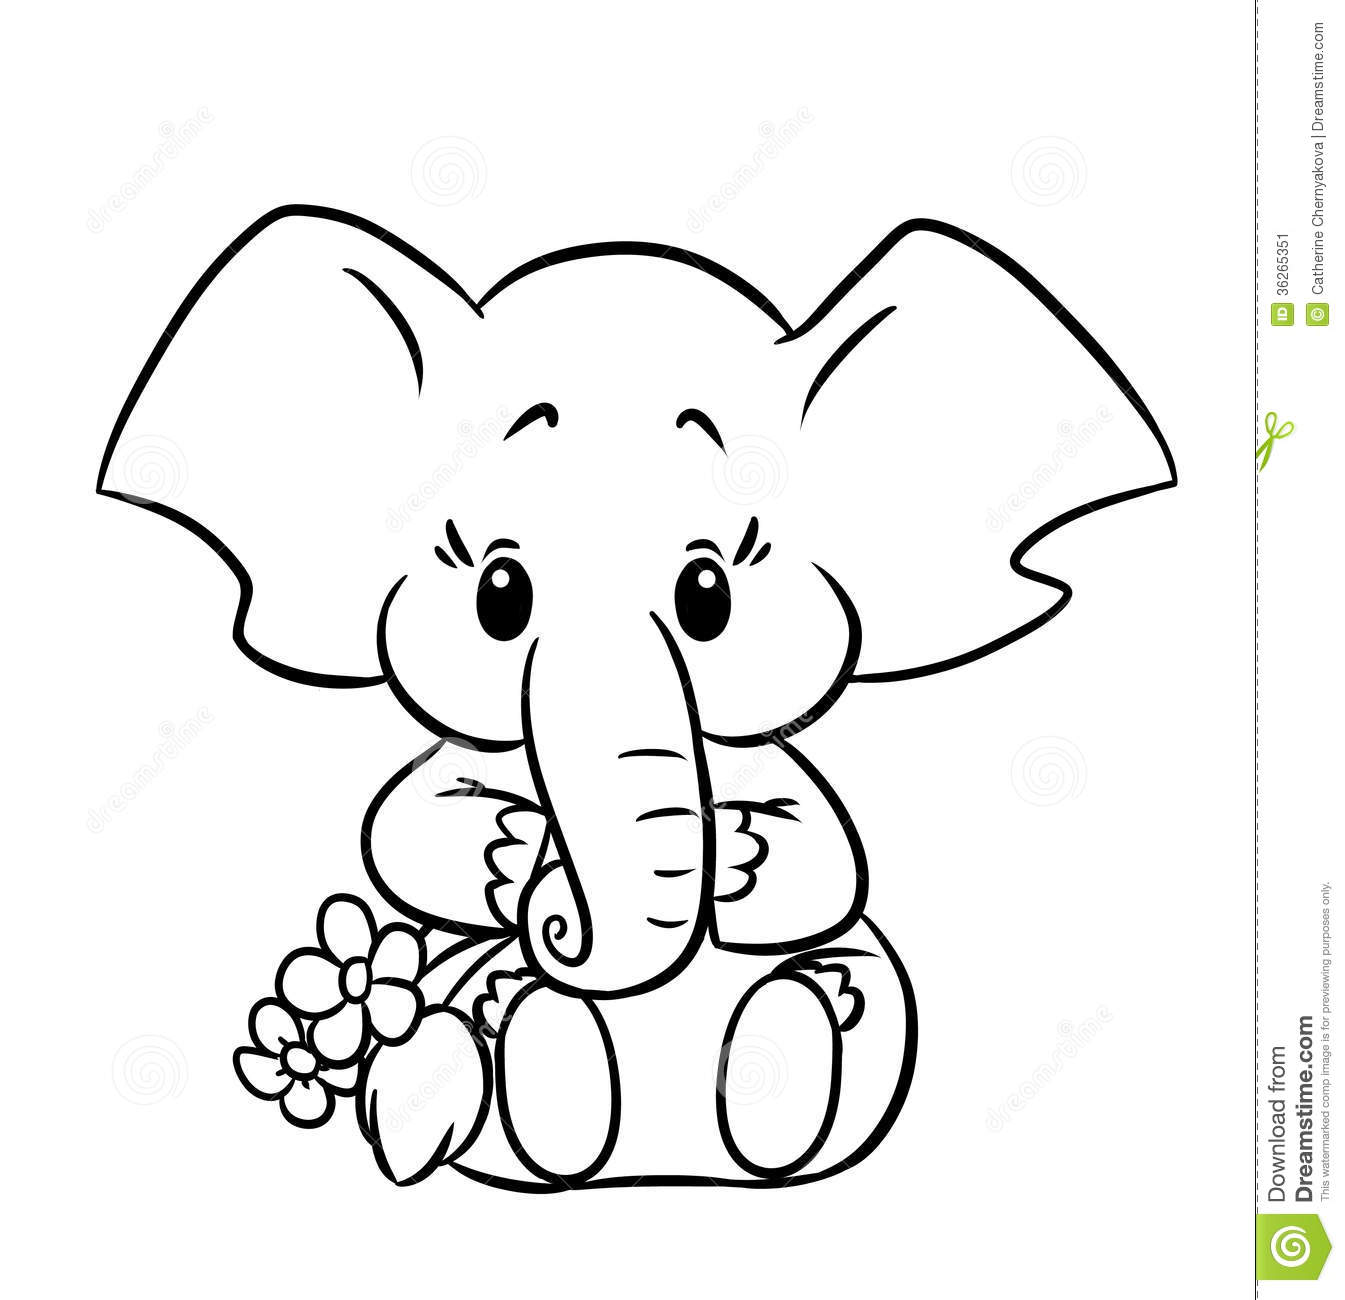 Baby elephant coloring pages to download and print for free for Elephant coloring pages